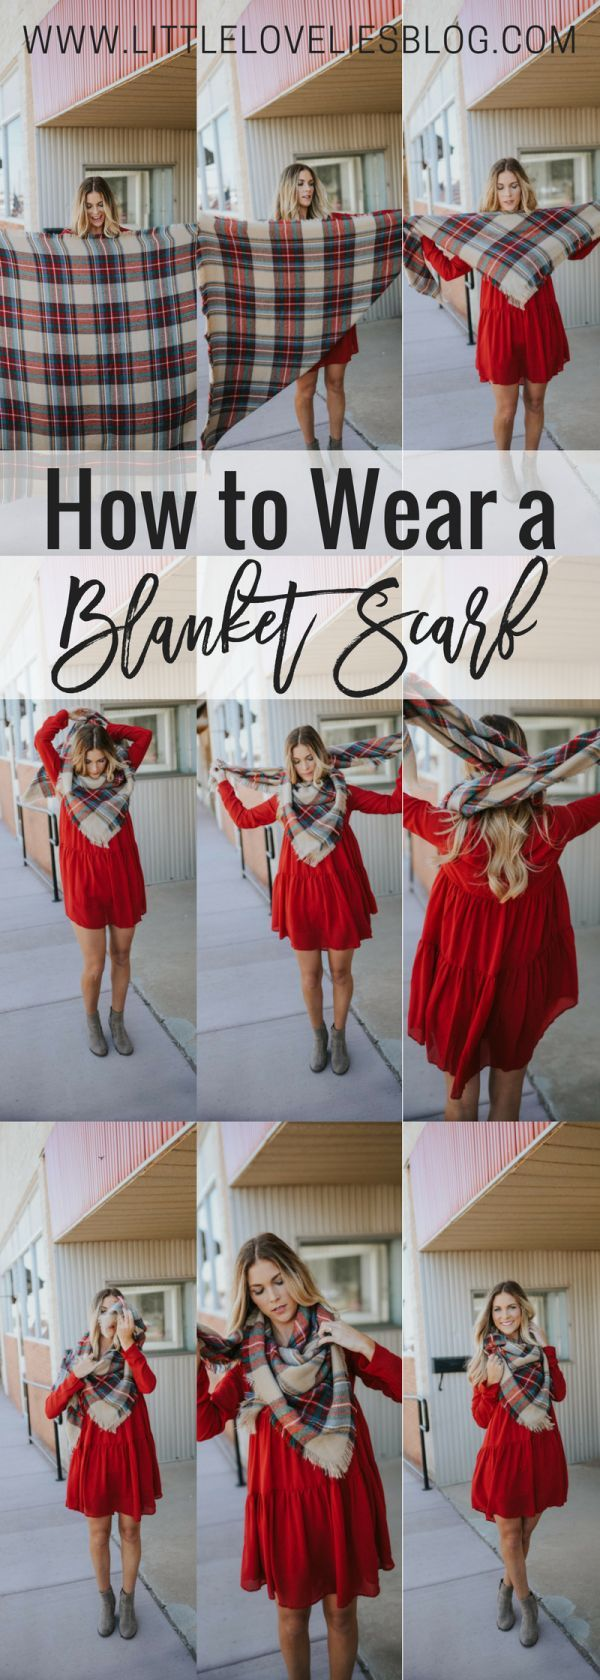 It's finally fall weather; cooler temps and leaves are falling! How do you wear that bulky blanket scarf that 's been hiding in your closet? Today I'm going to